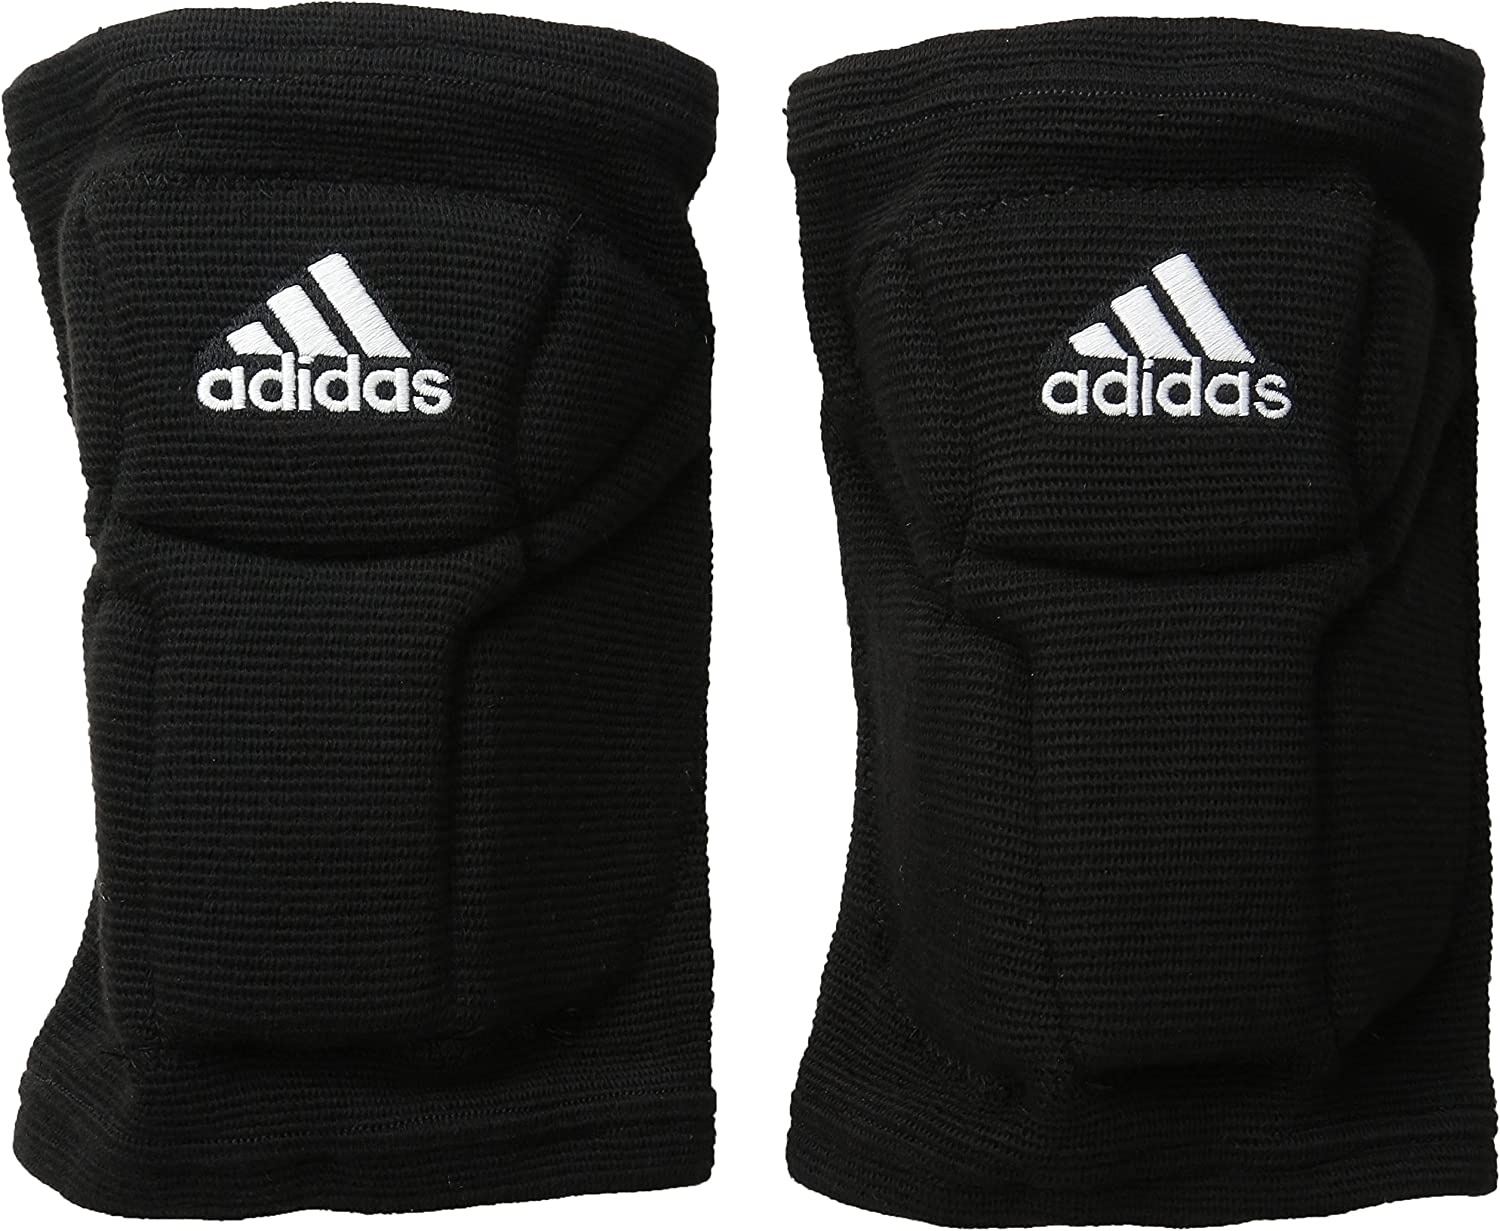 Adidas Unisex Elite Volleyball Performance Knee Pads Compression Fit Knee Pads Amazon Canada